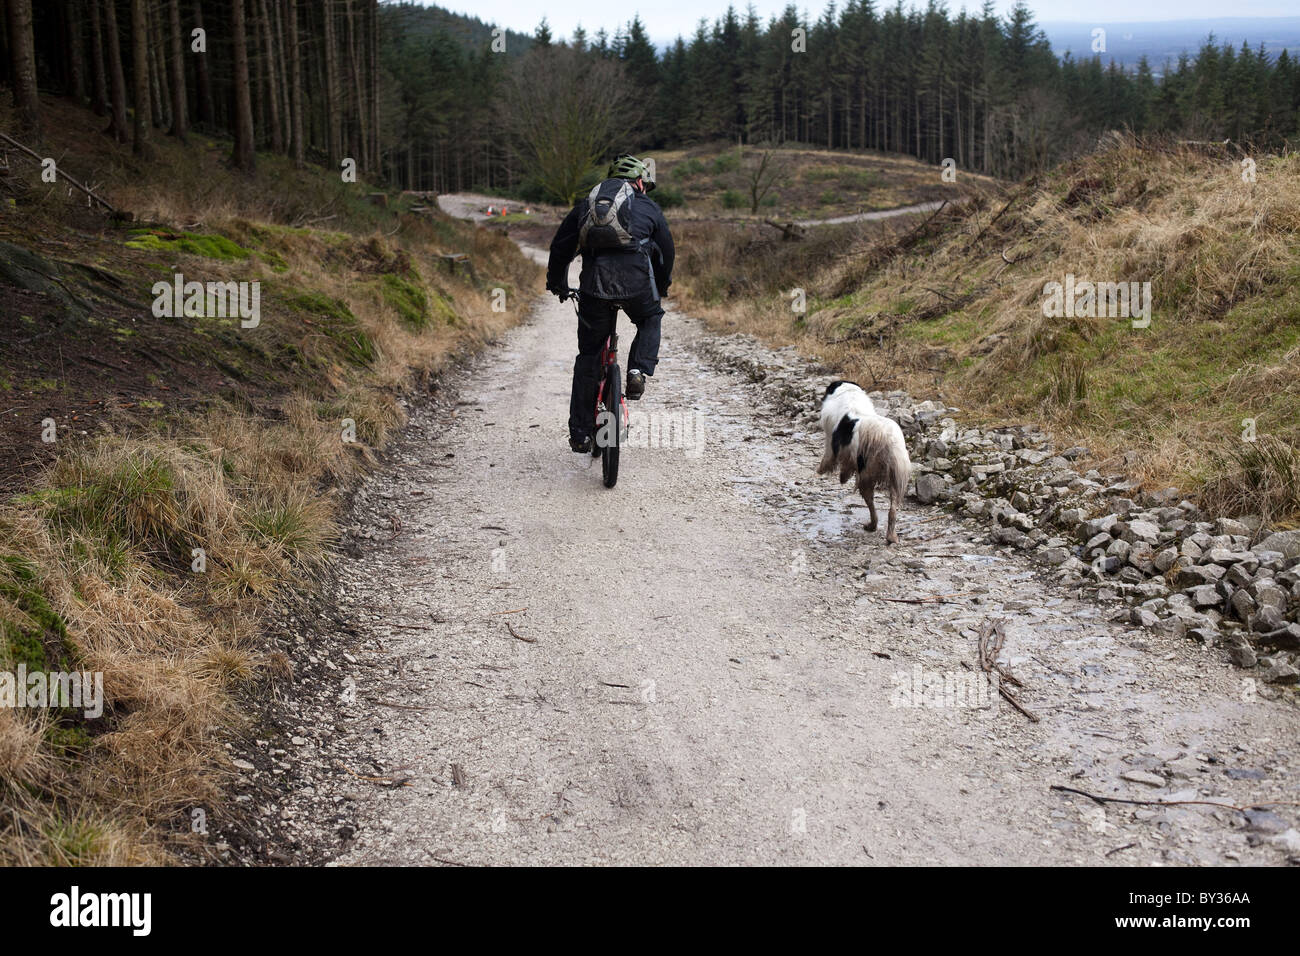 a mountain biker rides with his dog through Macclesfield Forest - Stock Image